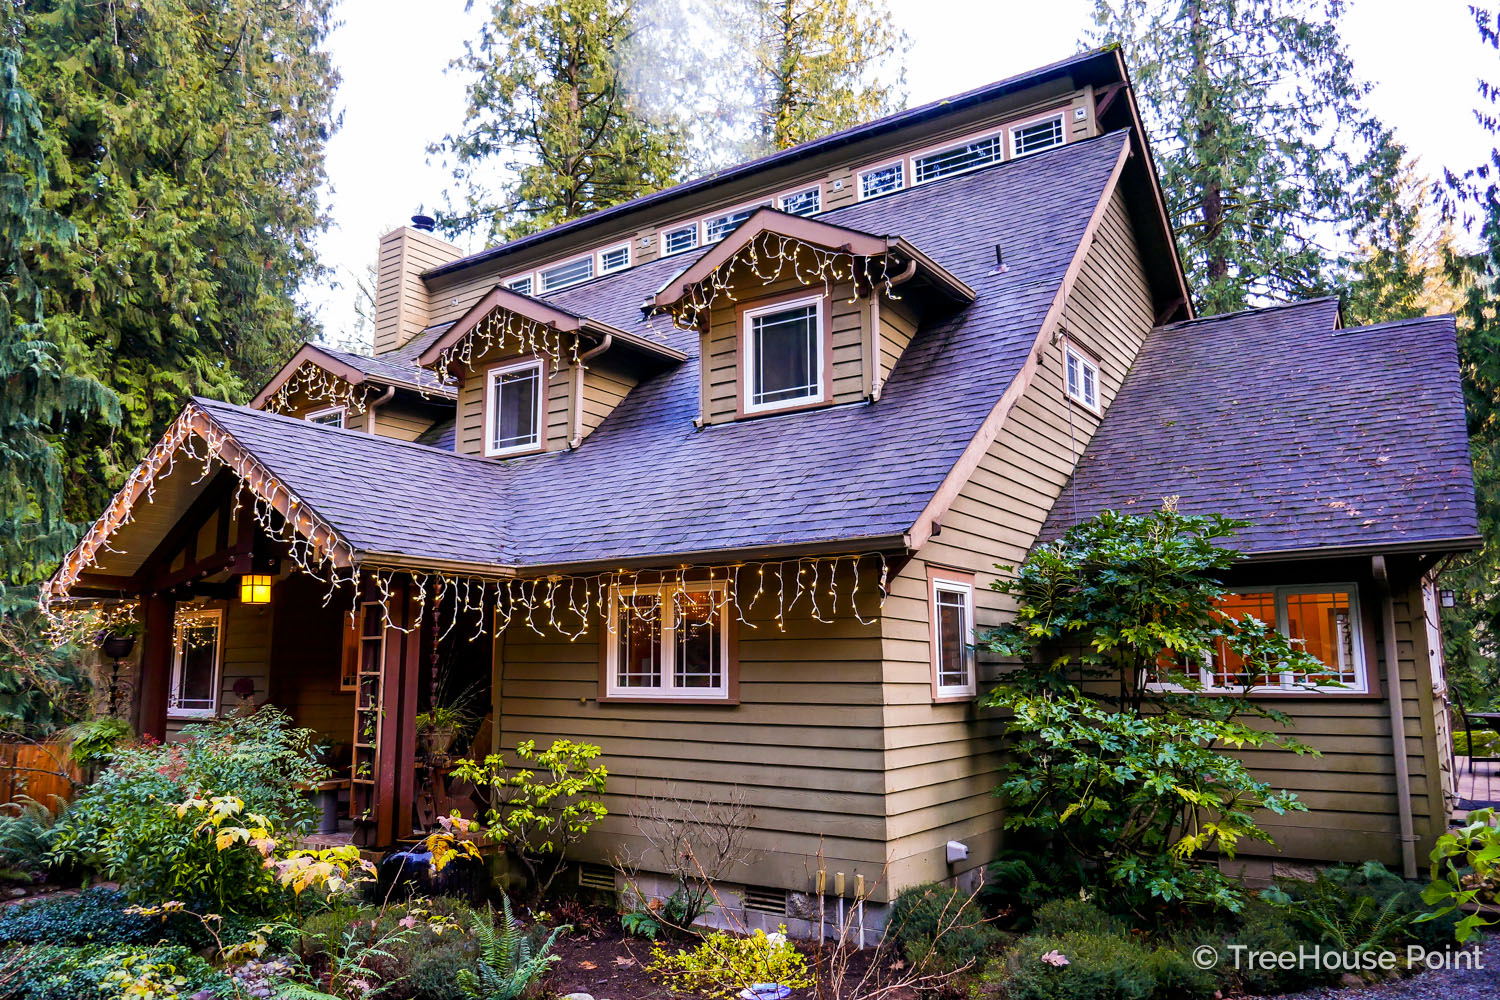 Icicle lights add festive flare to the facade of the Lodge.